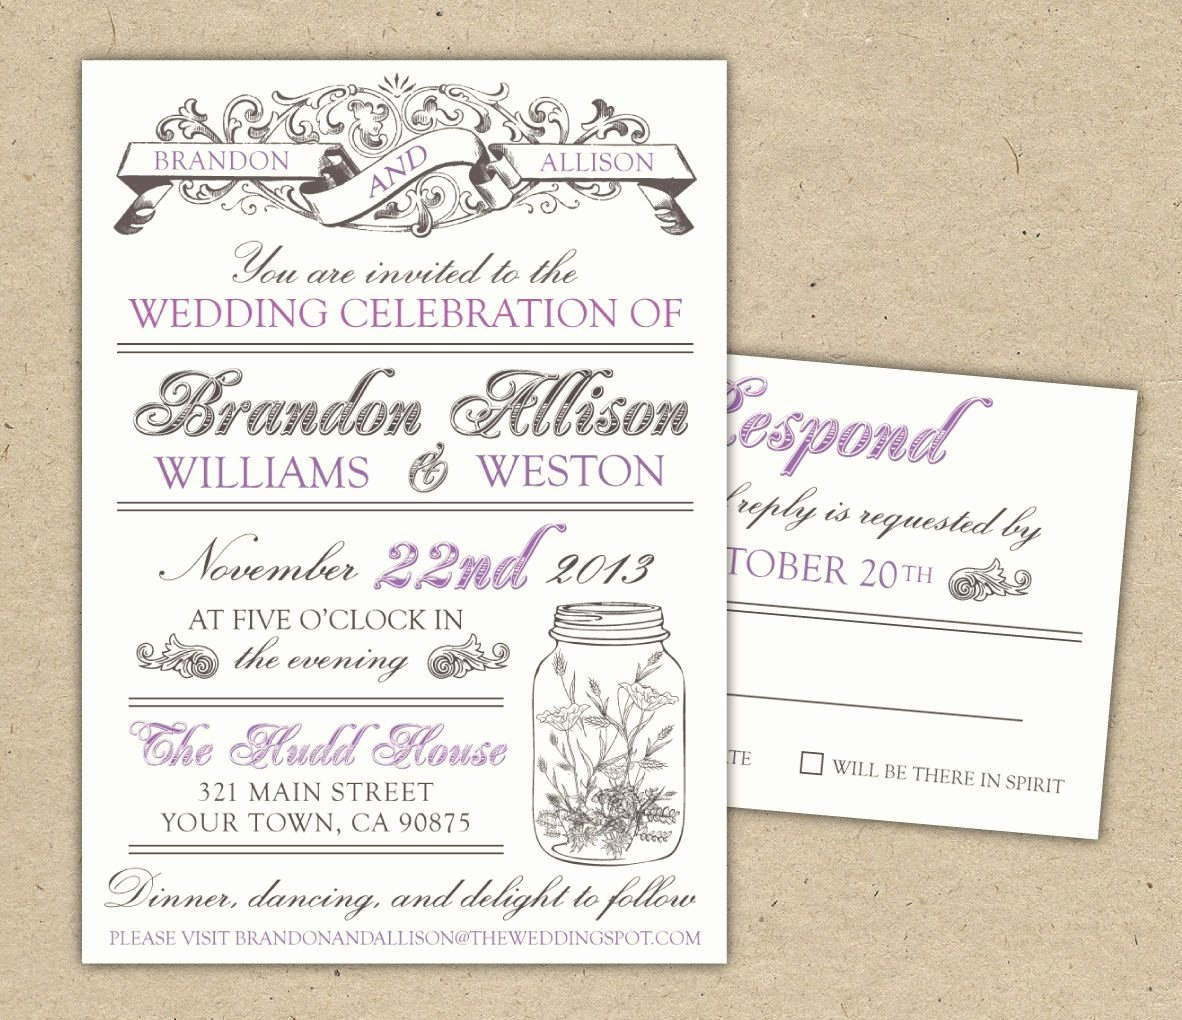 Wedding Invitation Templates Free Best Of Free Templates for Invitations